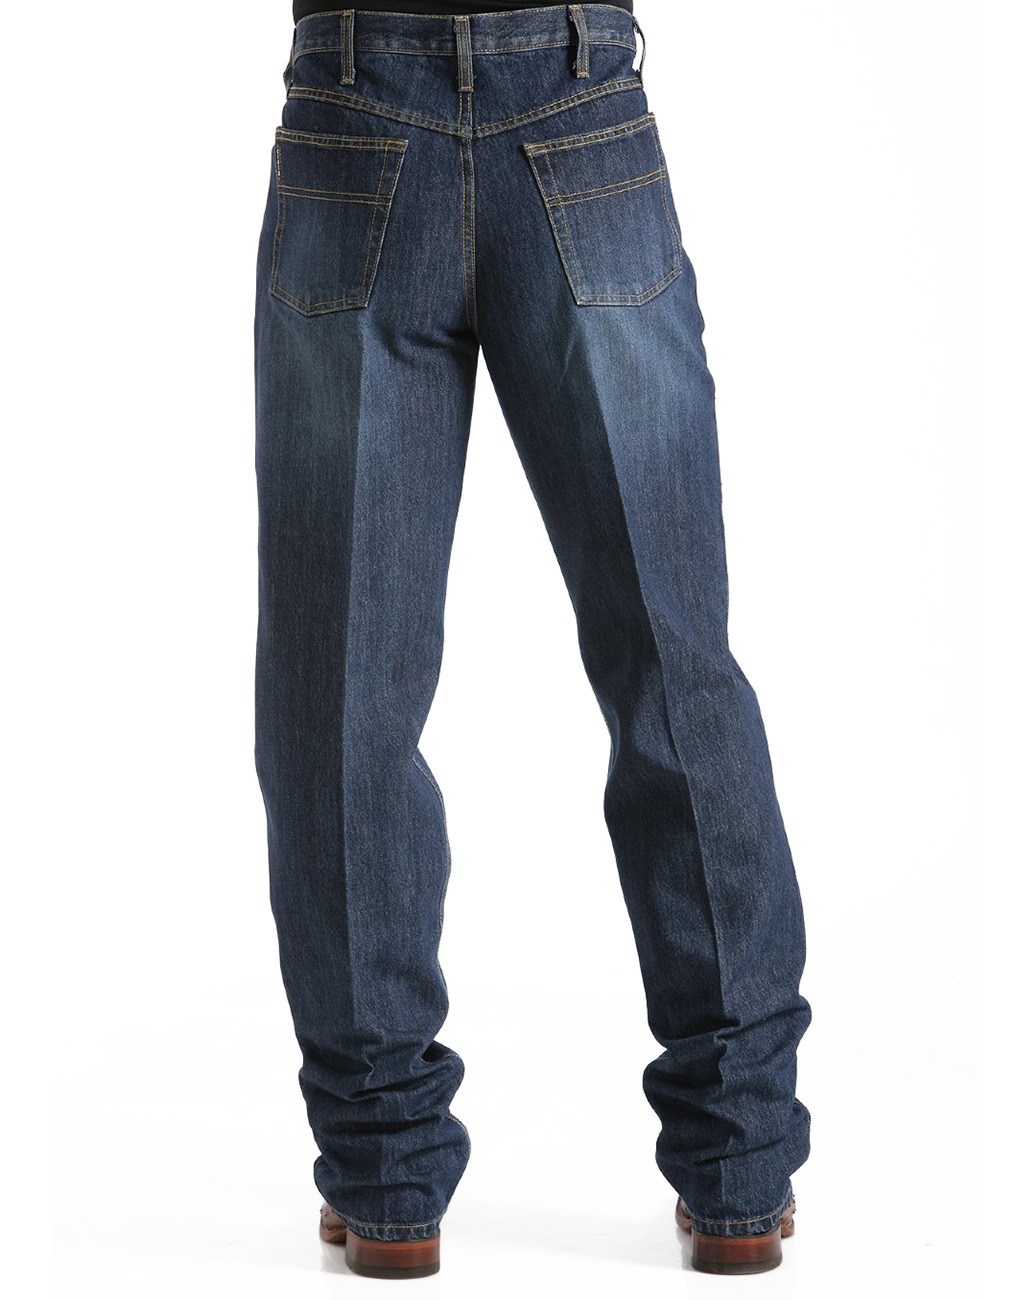 Cinch Men's Black Label High Rise Loose Fit Tapered Leg Jeans - Dark Stonewash